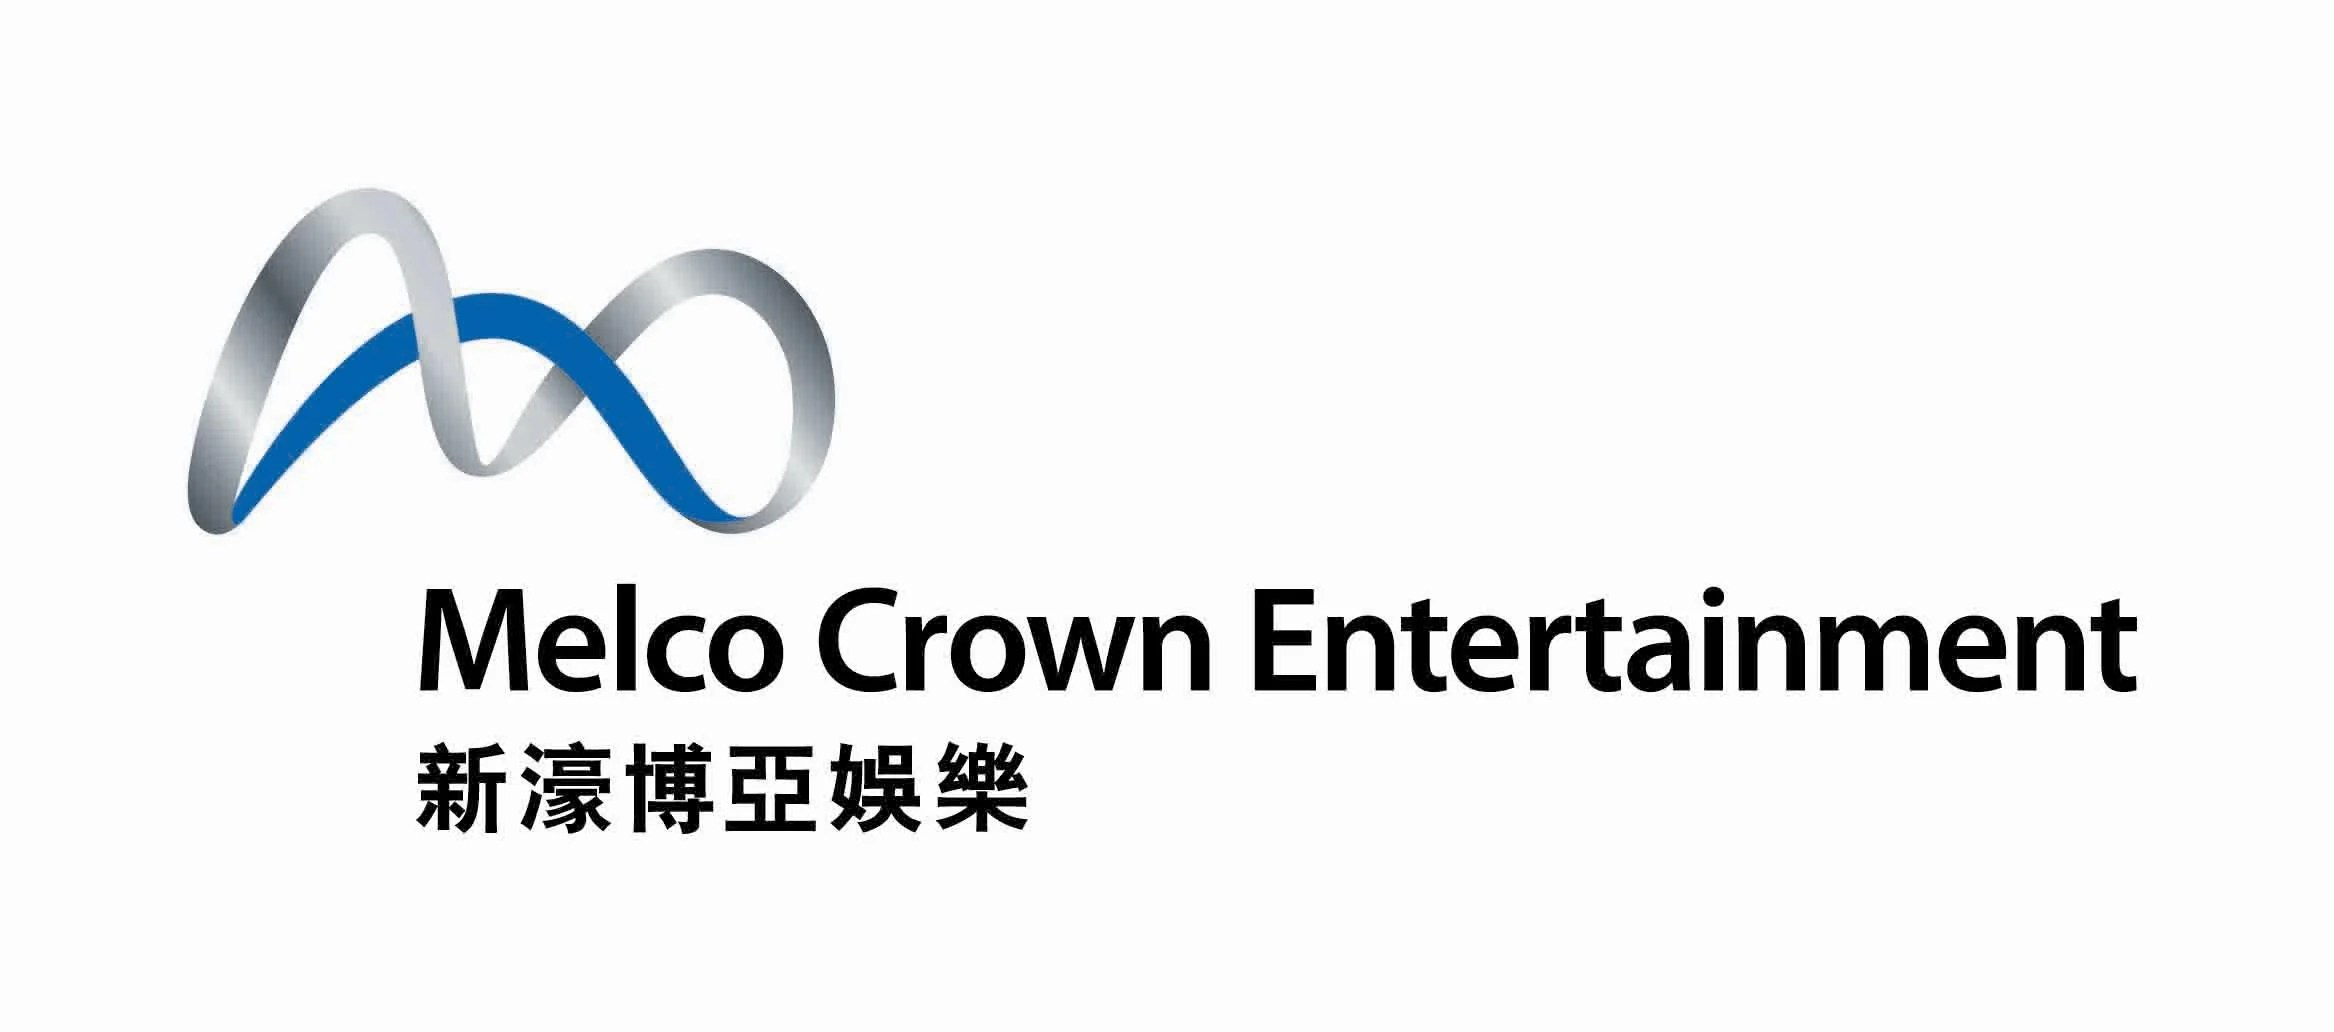 sofaer capital global research hk limited teddy fabric sofa reviews melco crown entertainment logo